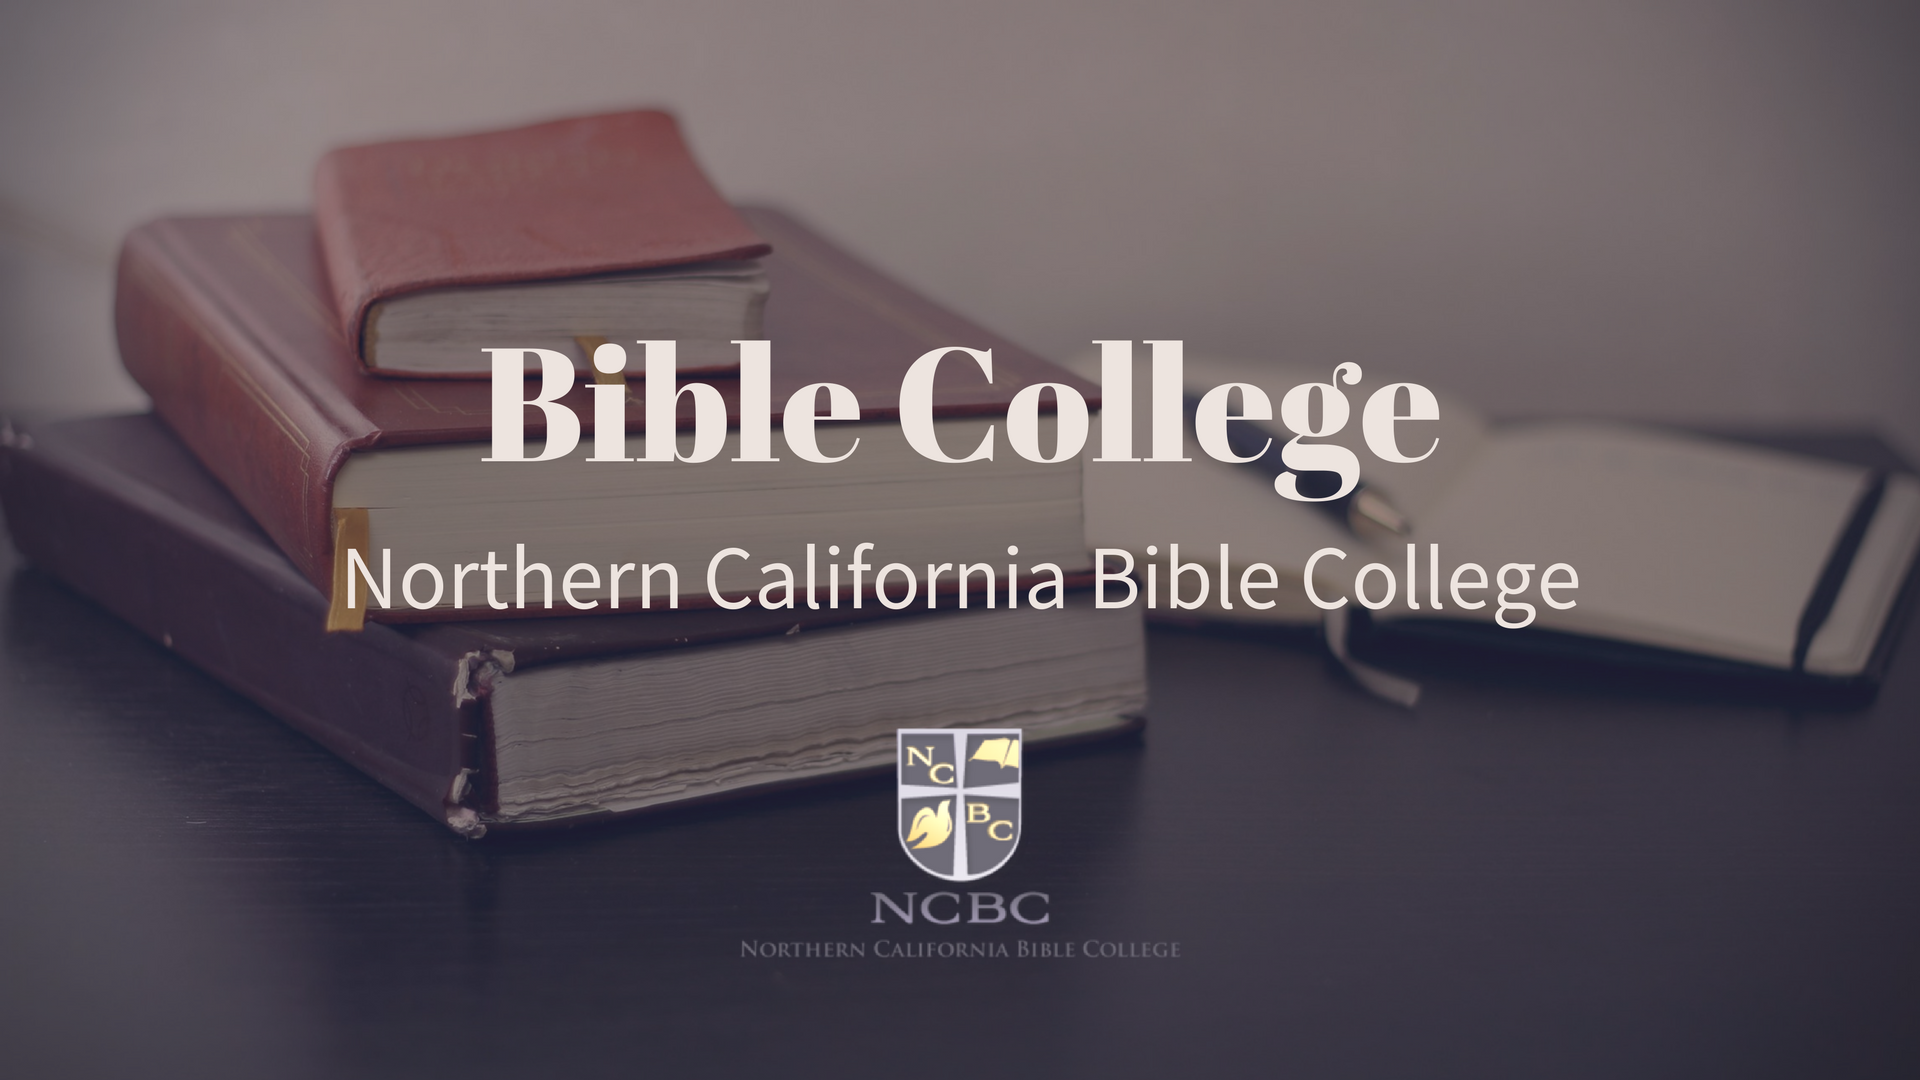 NCBC Bible College